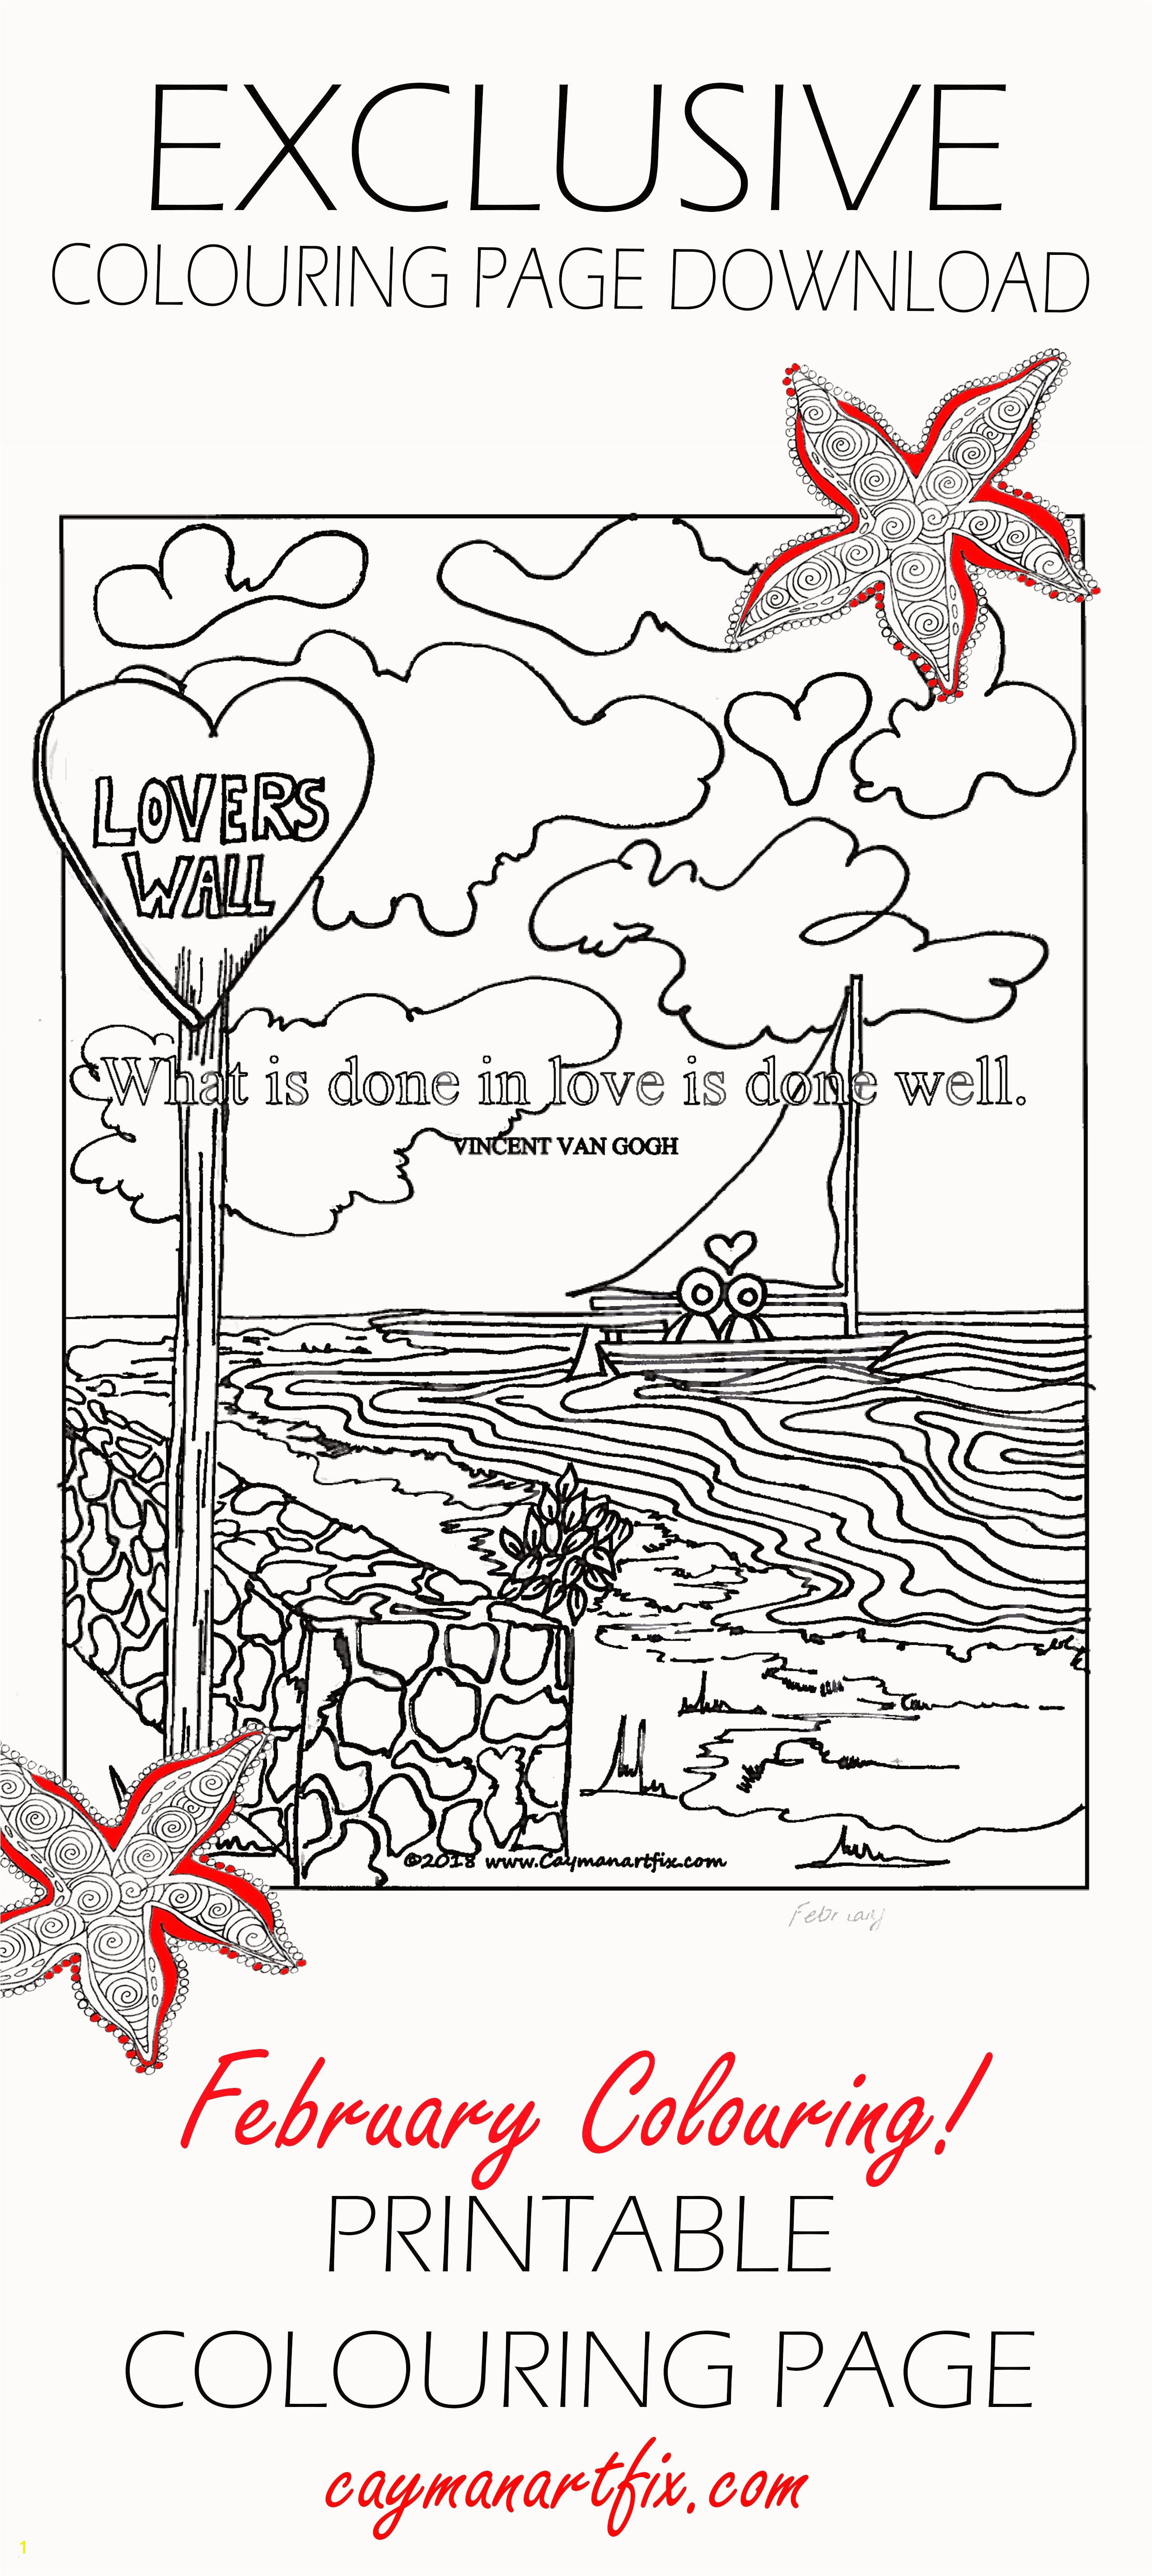 Quotes Coloring Pages Quote Coloring Pages Beautiful Coloring Pages with Quotes Fresh Fitnesscoloring Pages 0d